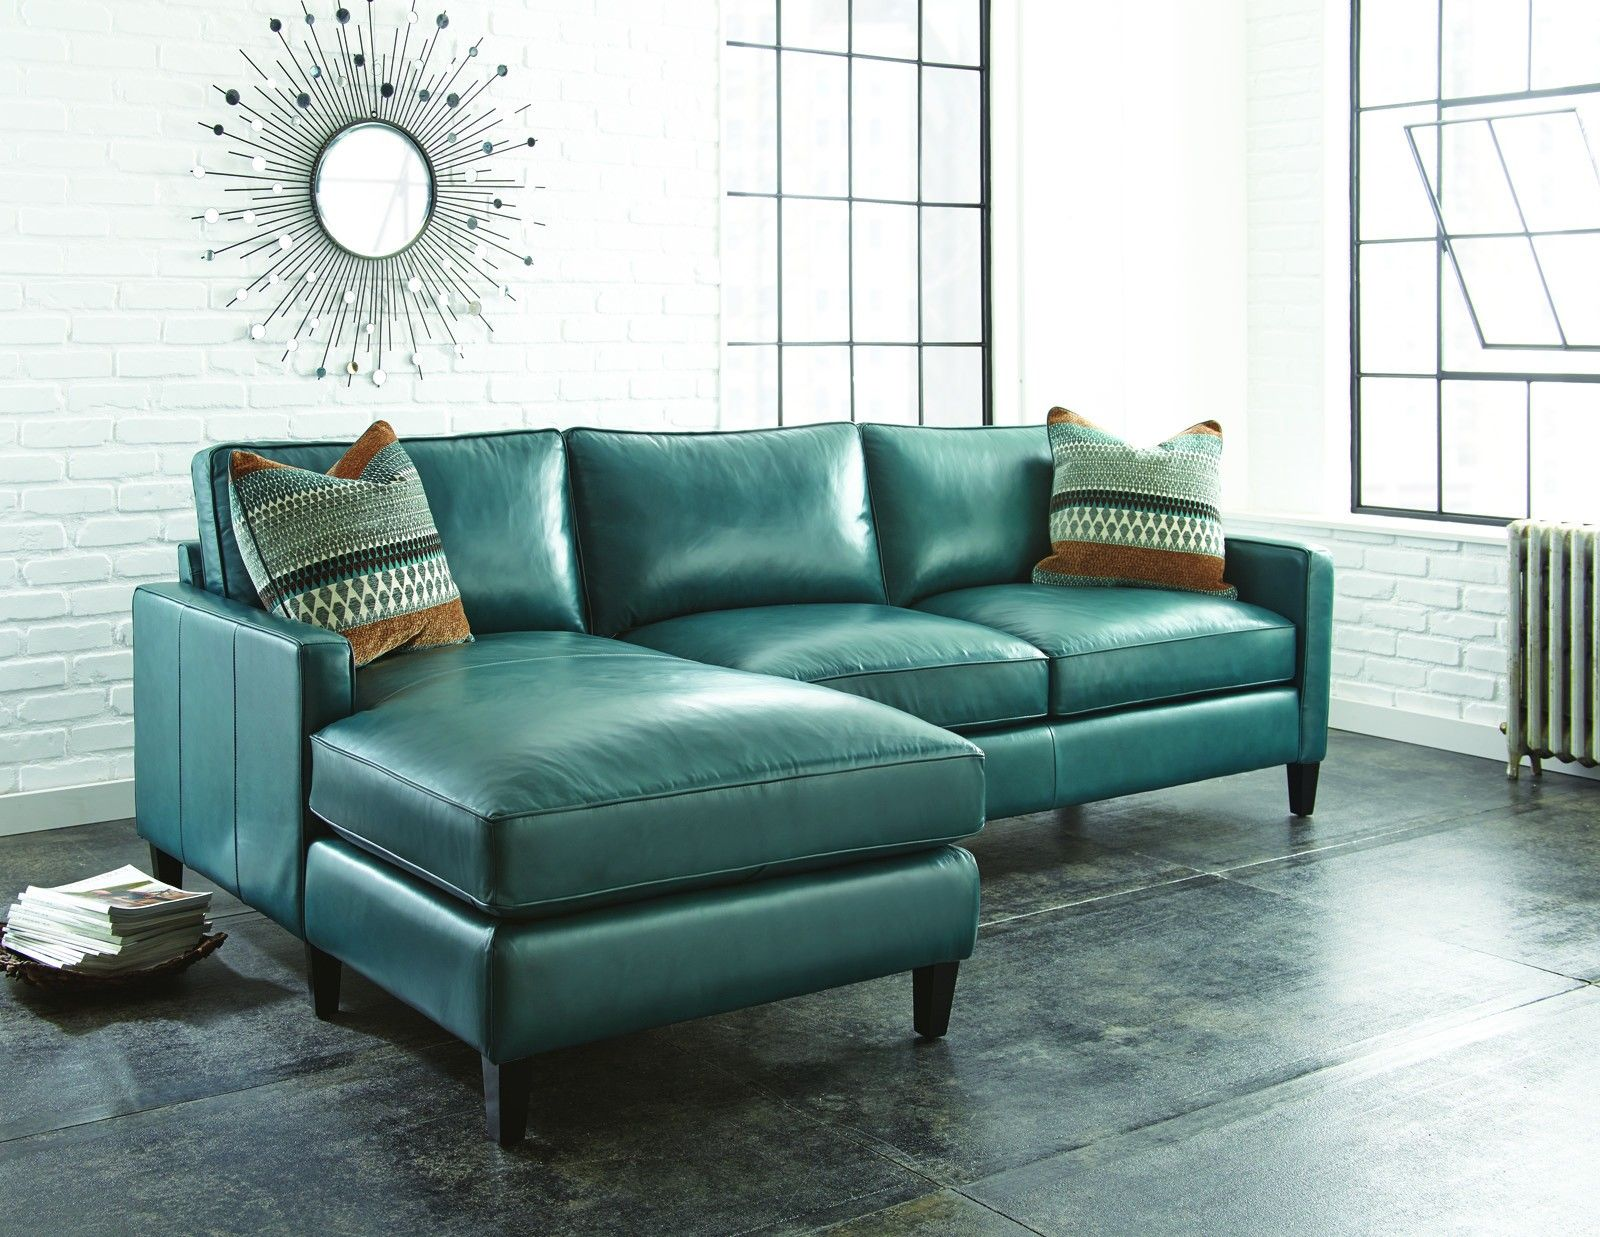 Best 25 Teal leather sofas ideas on Pinterest